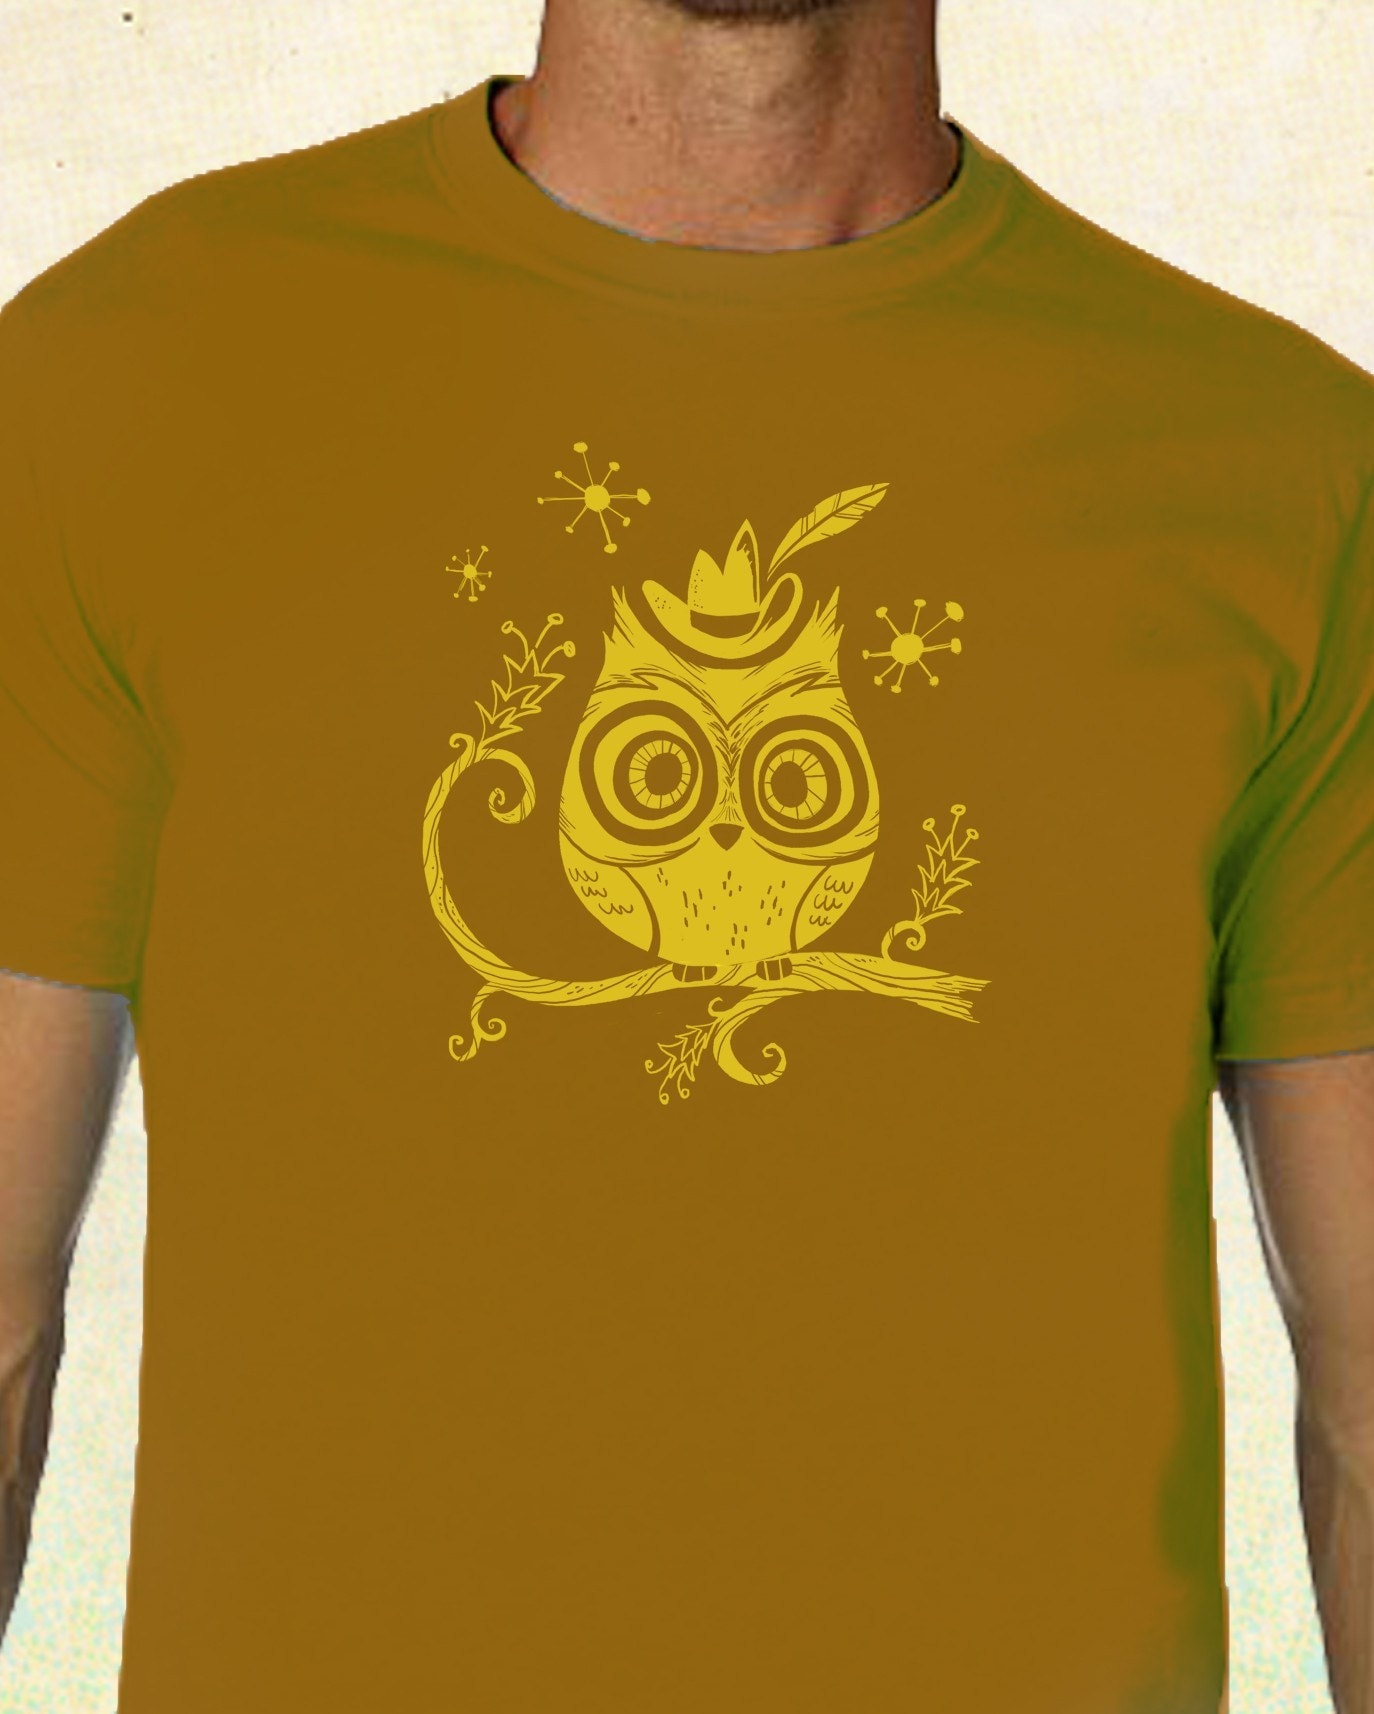 HOOT OWL IN A FEDORA Retro Men's Graphic T-Shirt AMERICAN